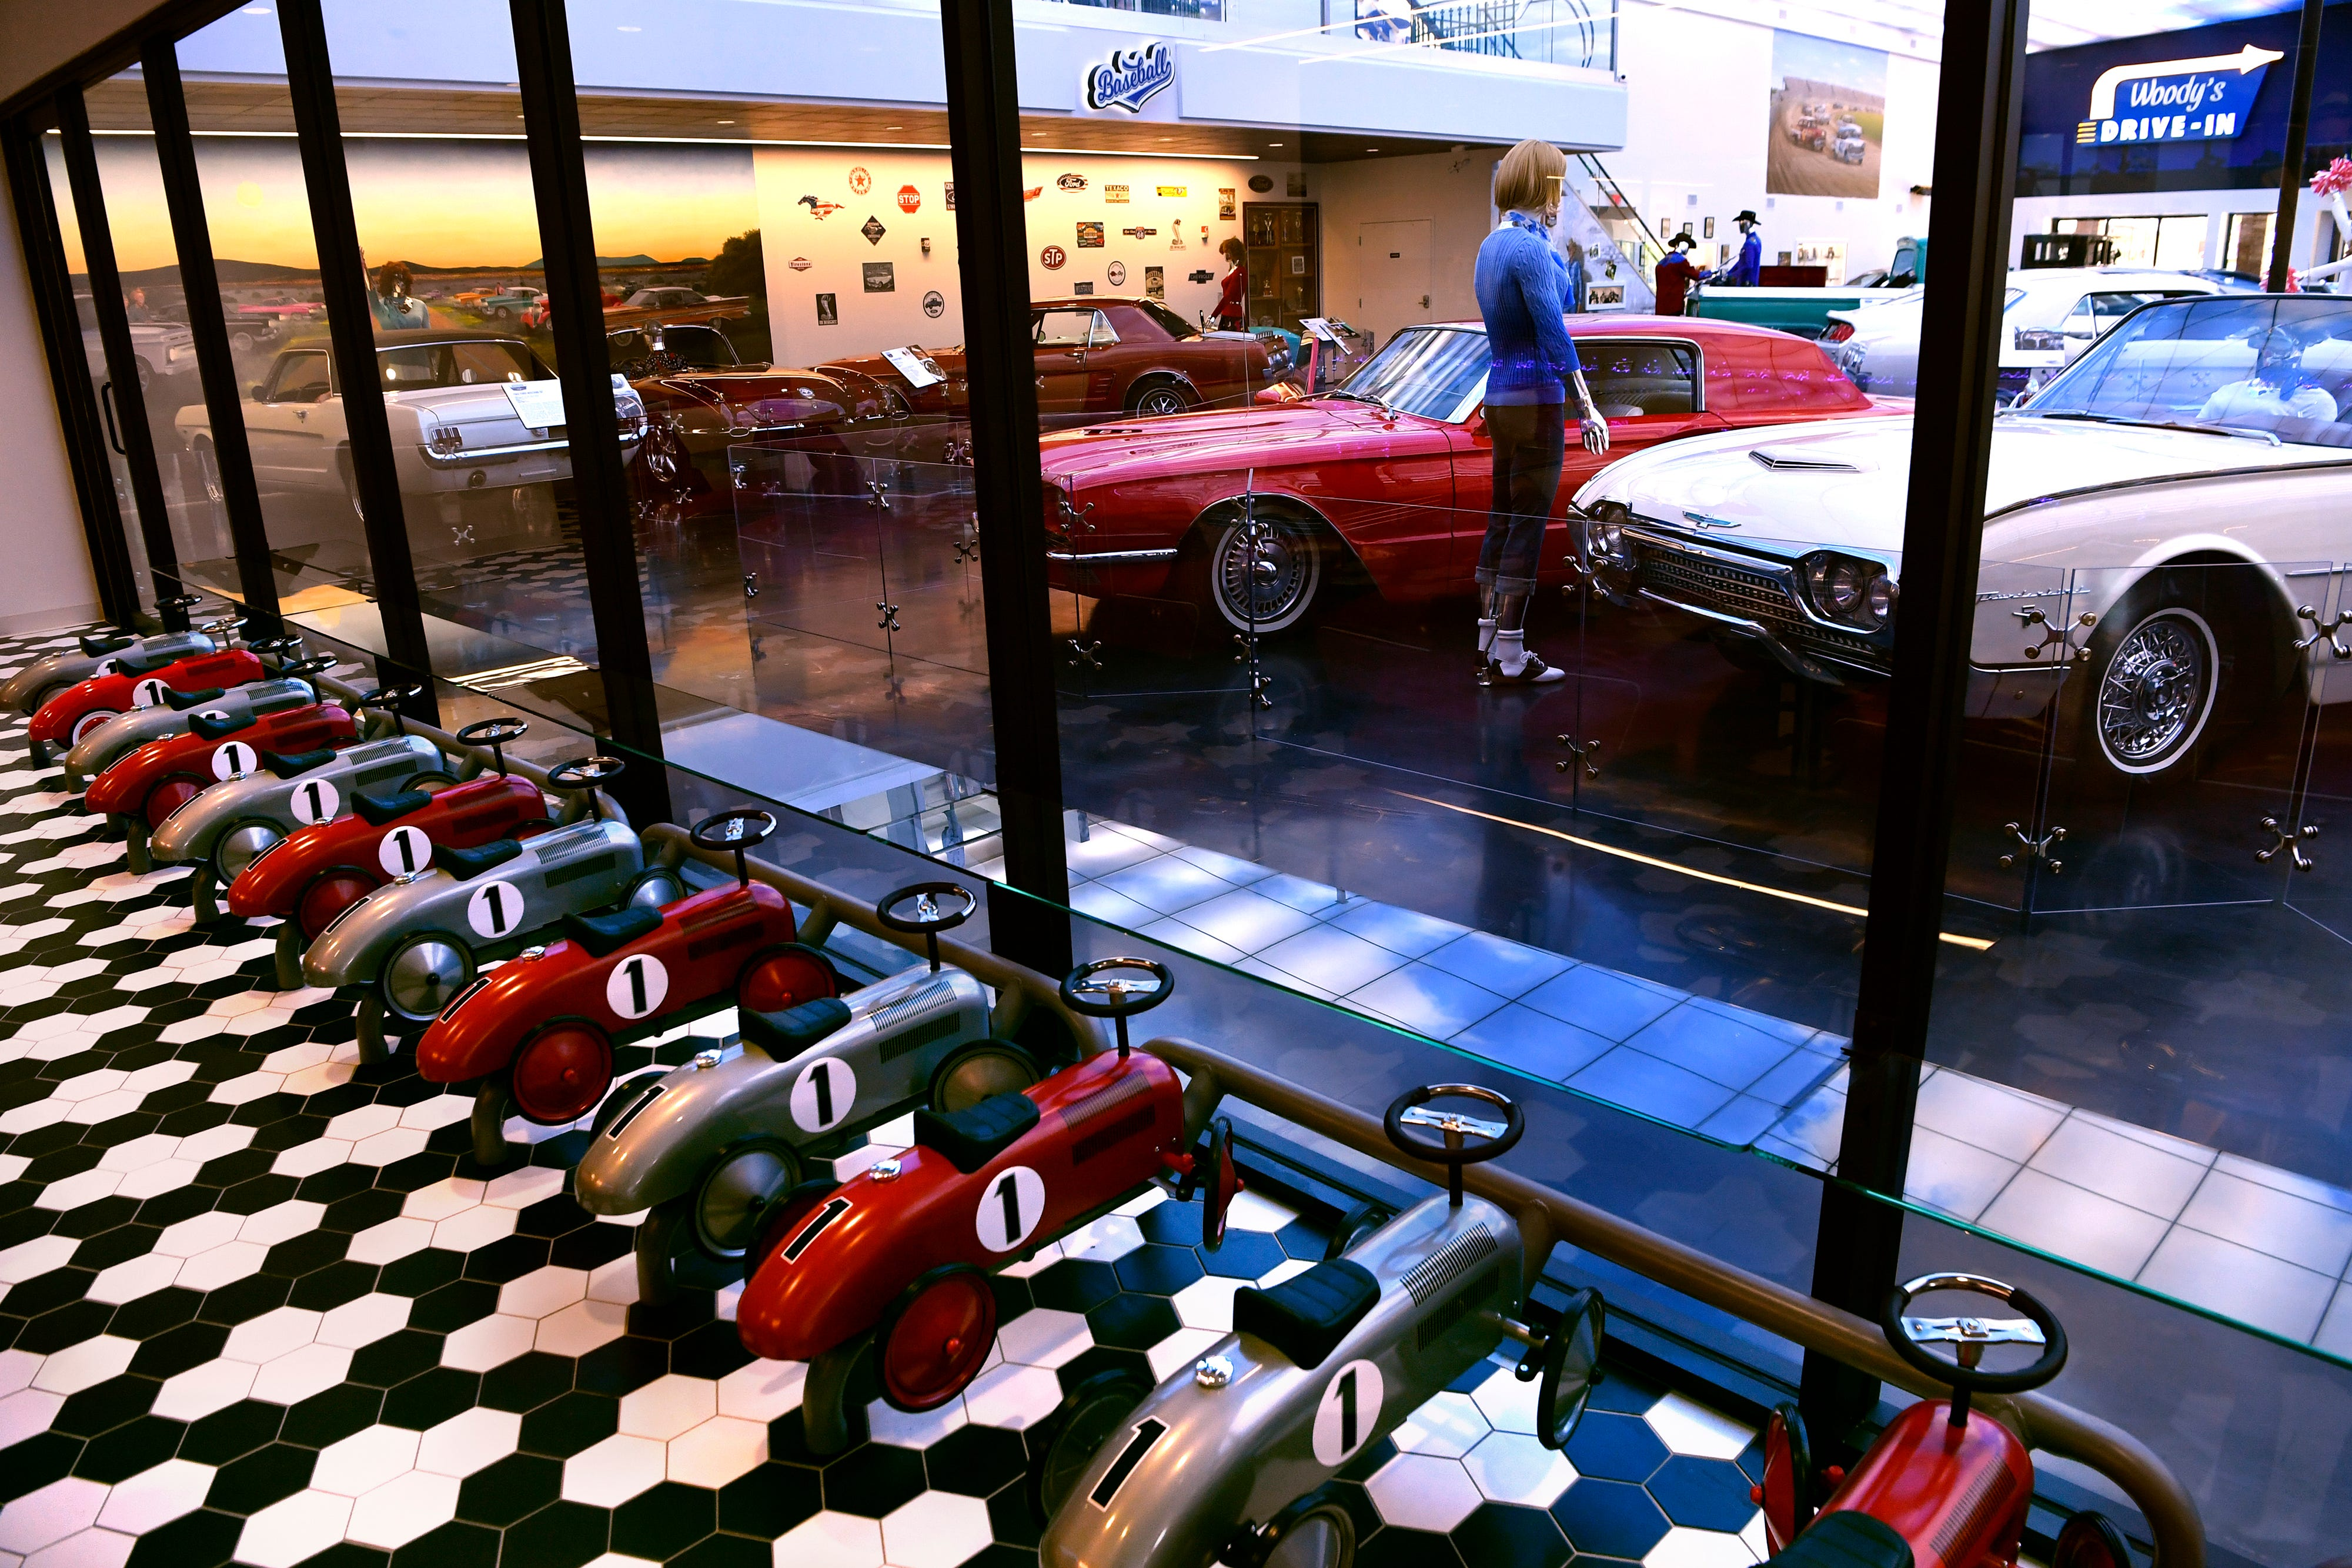 Racing car seats face outward toward the main museum floor inside the diner April 26, 2019 at Woody's Classic Cars and Baseball Museum in Cross Plains.